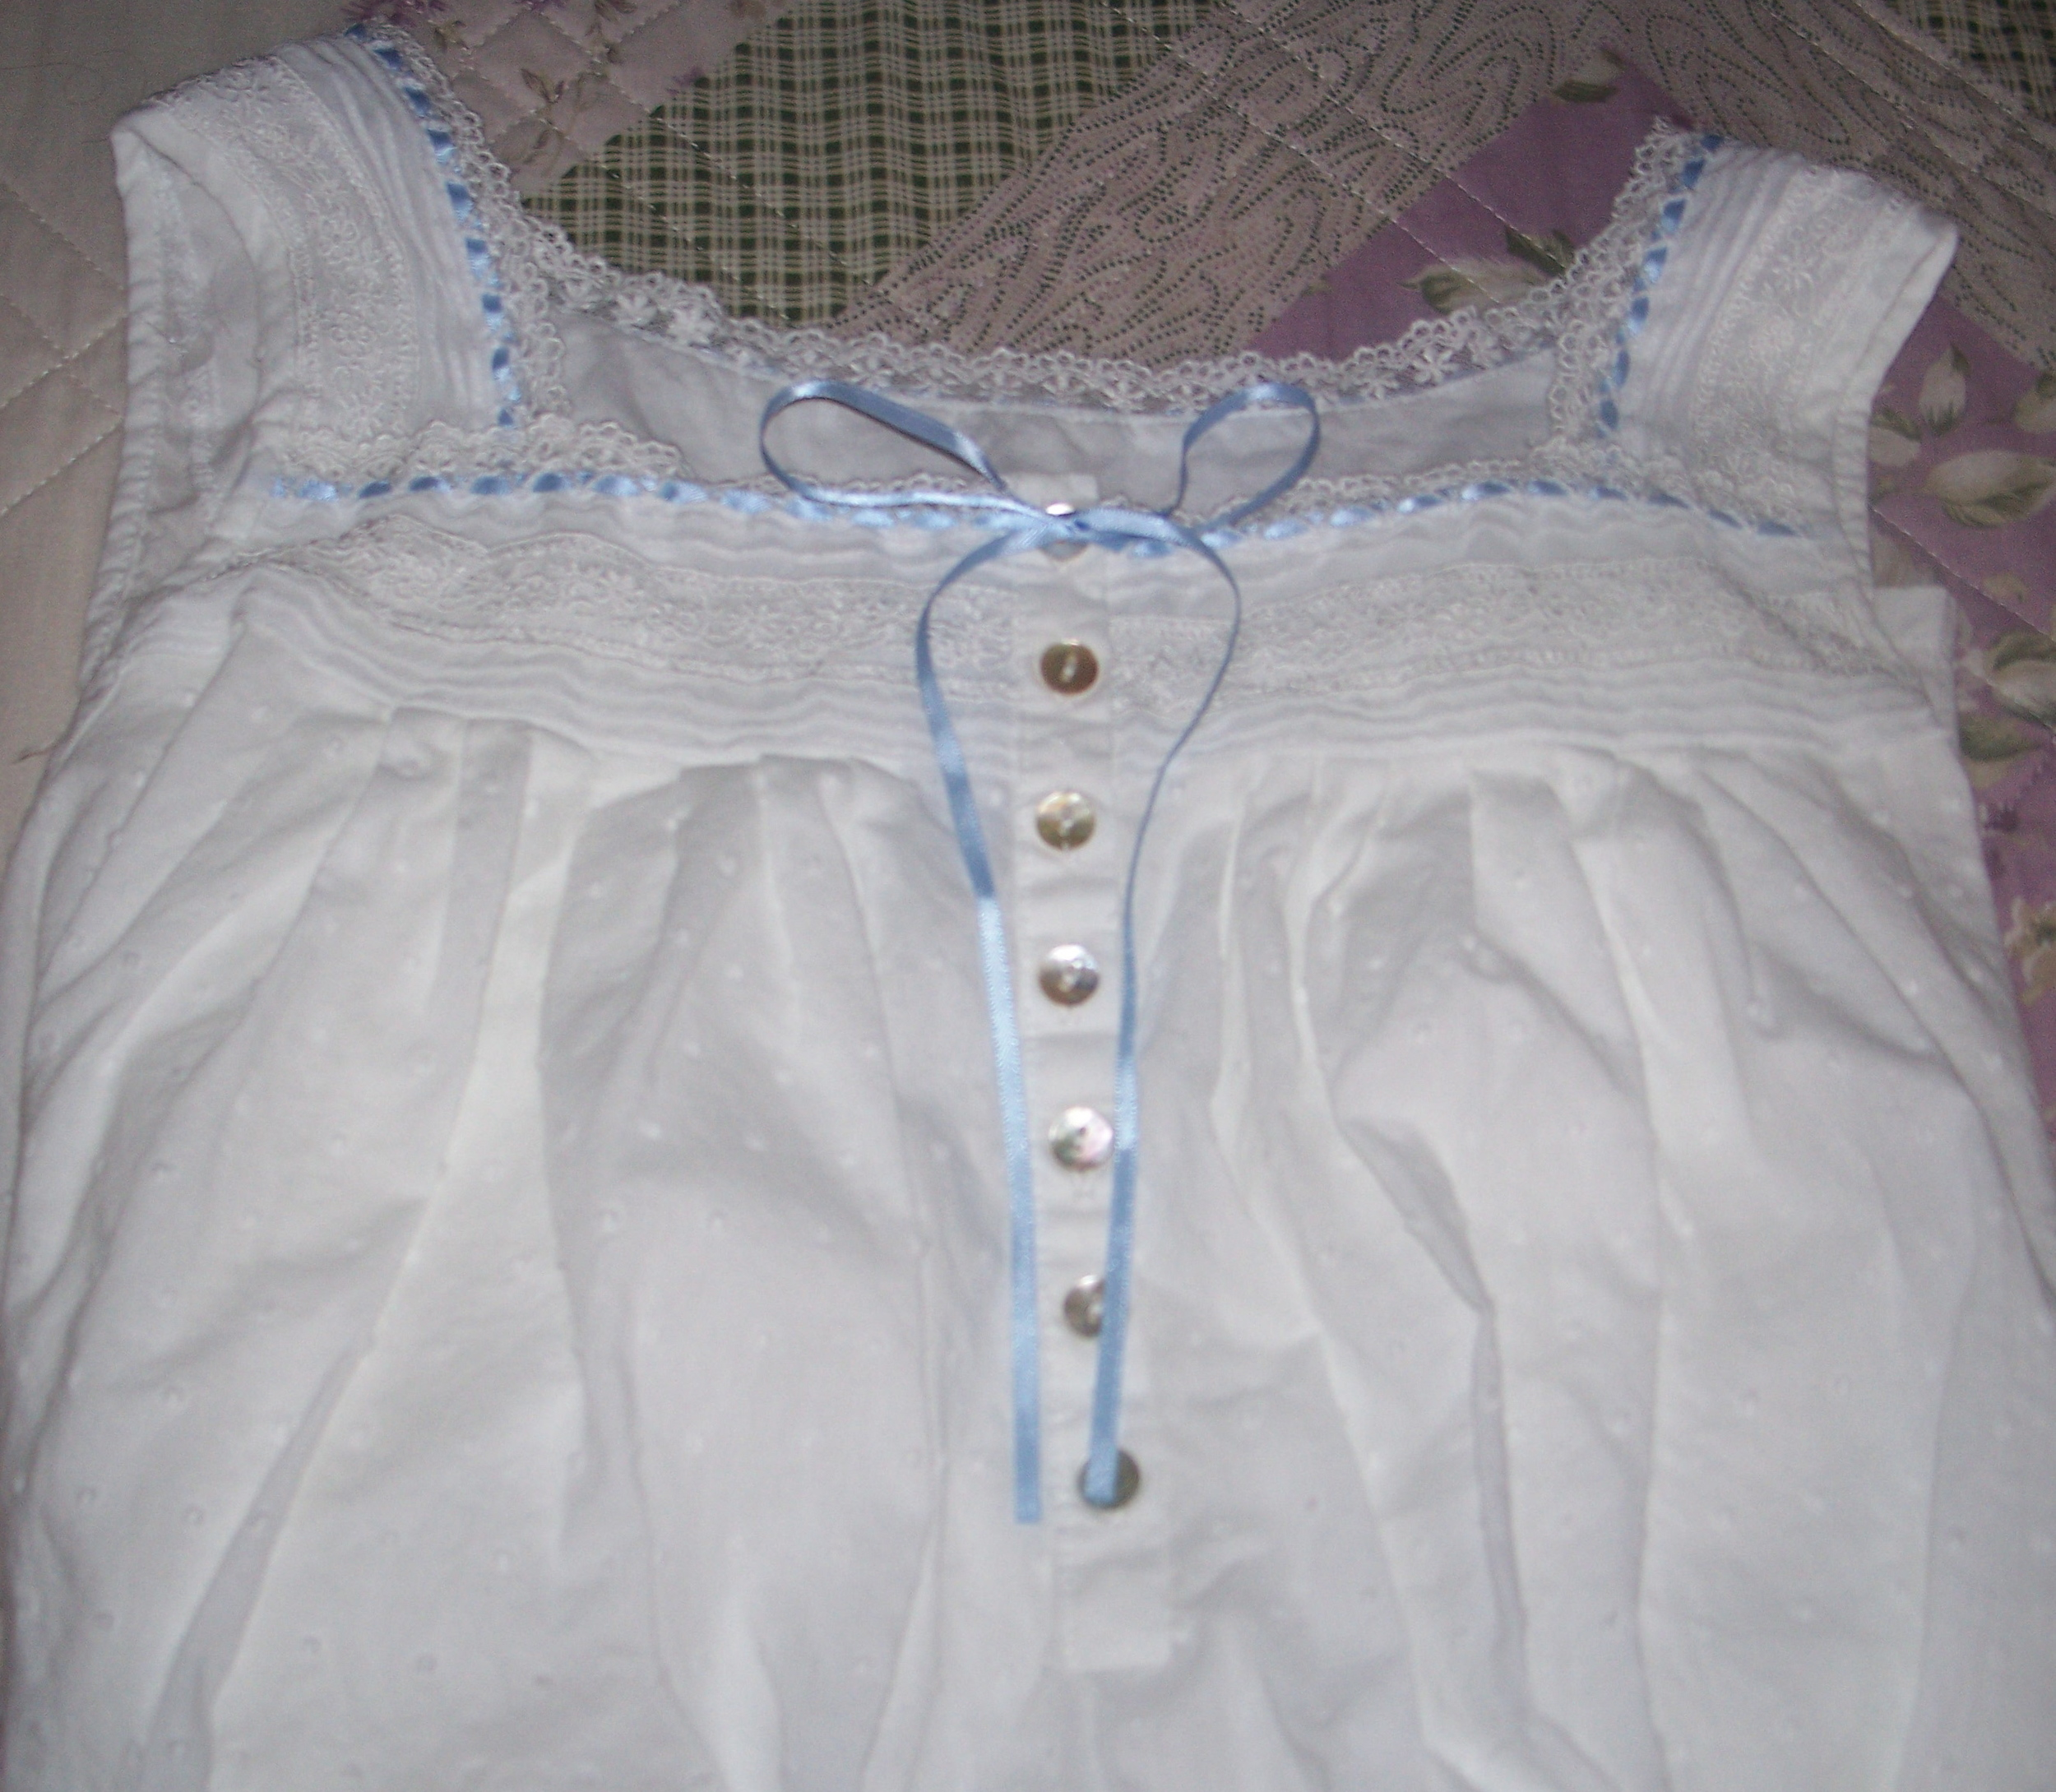 new nightgown